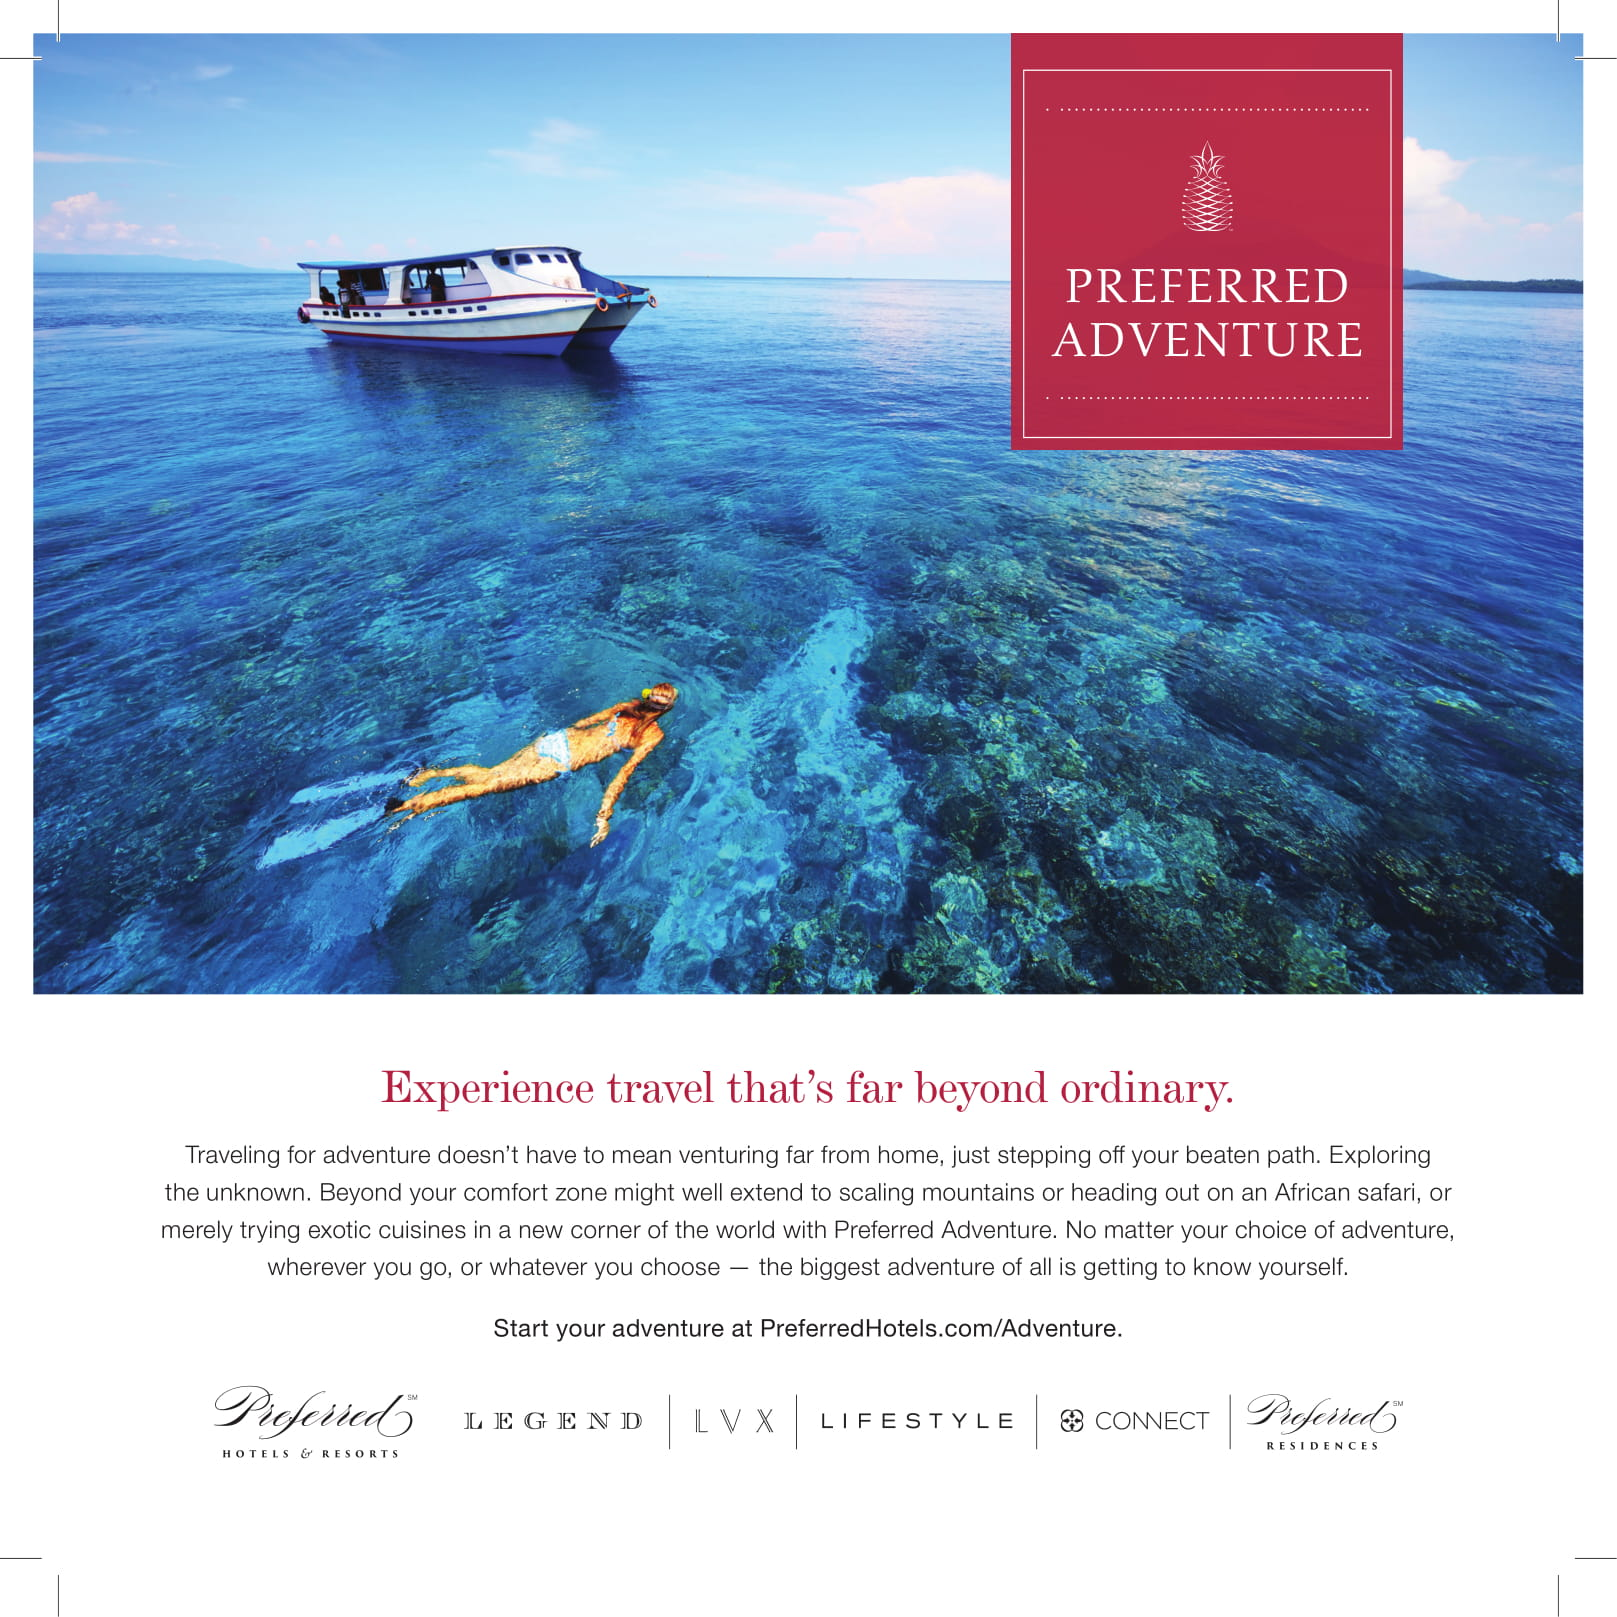 Ad copy for hotels that feature adventure programs